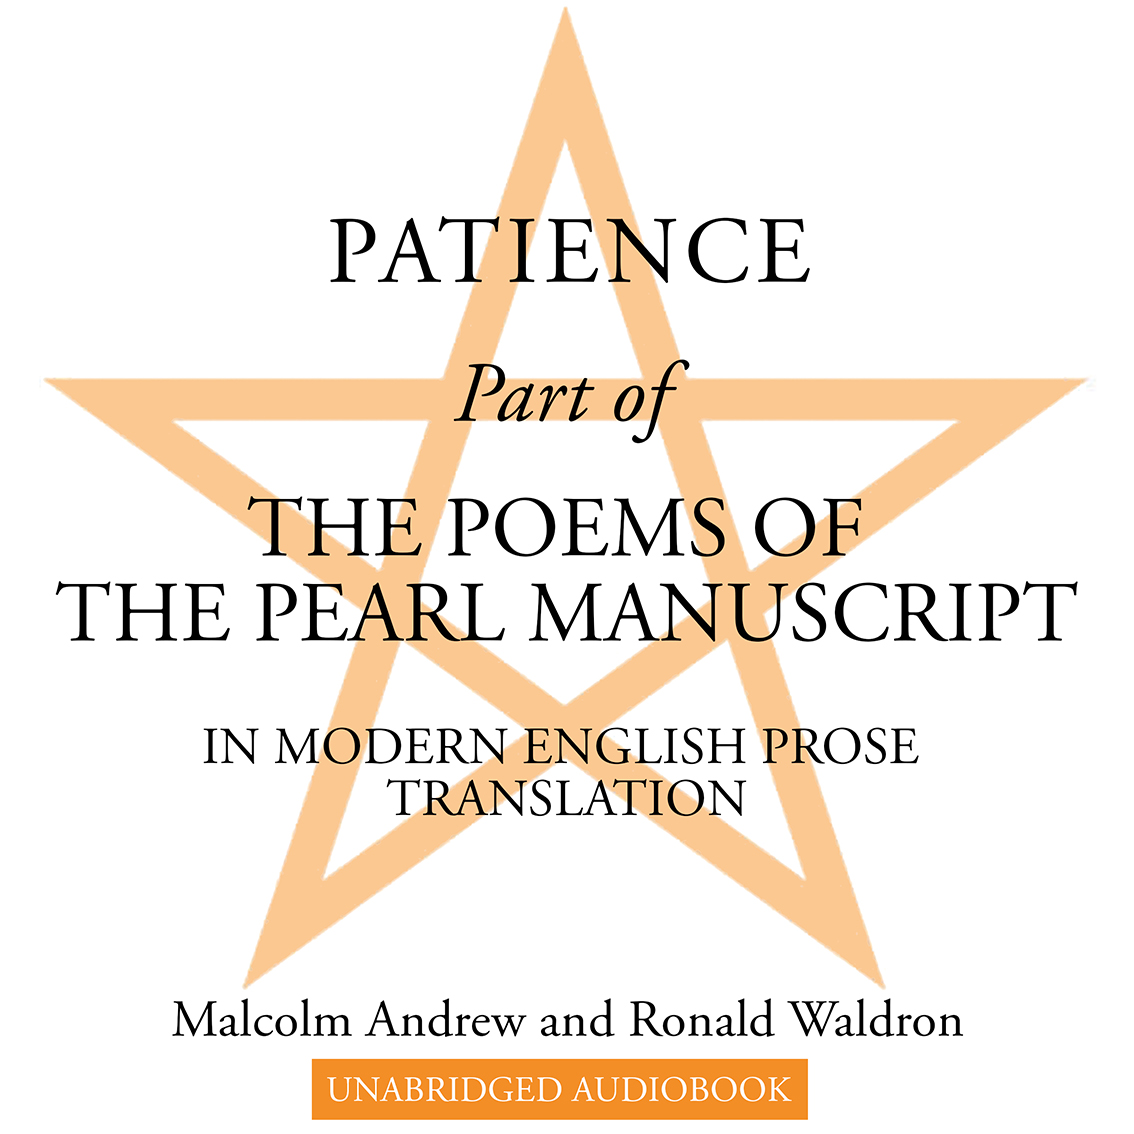 Patience, Part of The Poems of the Pearl Manuscript in Modern English Prose Translation. authors: Malcolm Andrew Ronald Waldron. Unabridged audiobook.